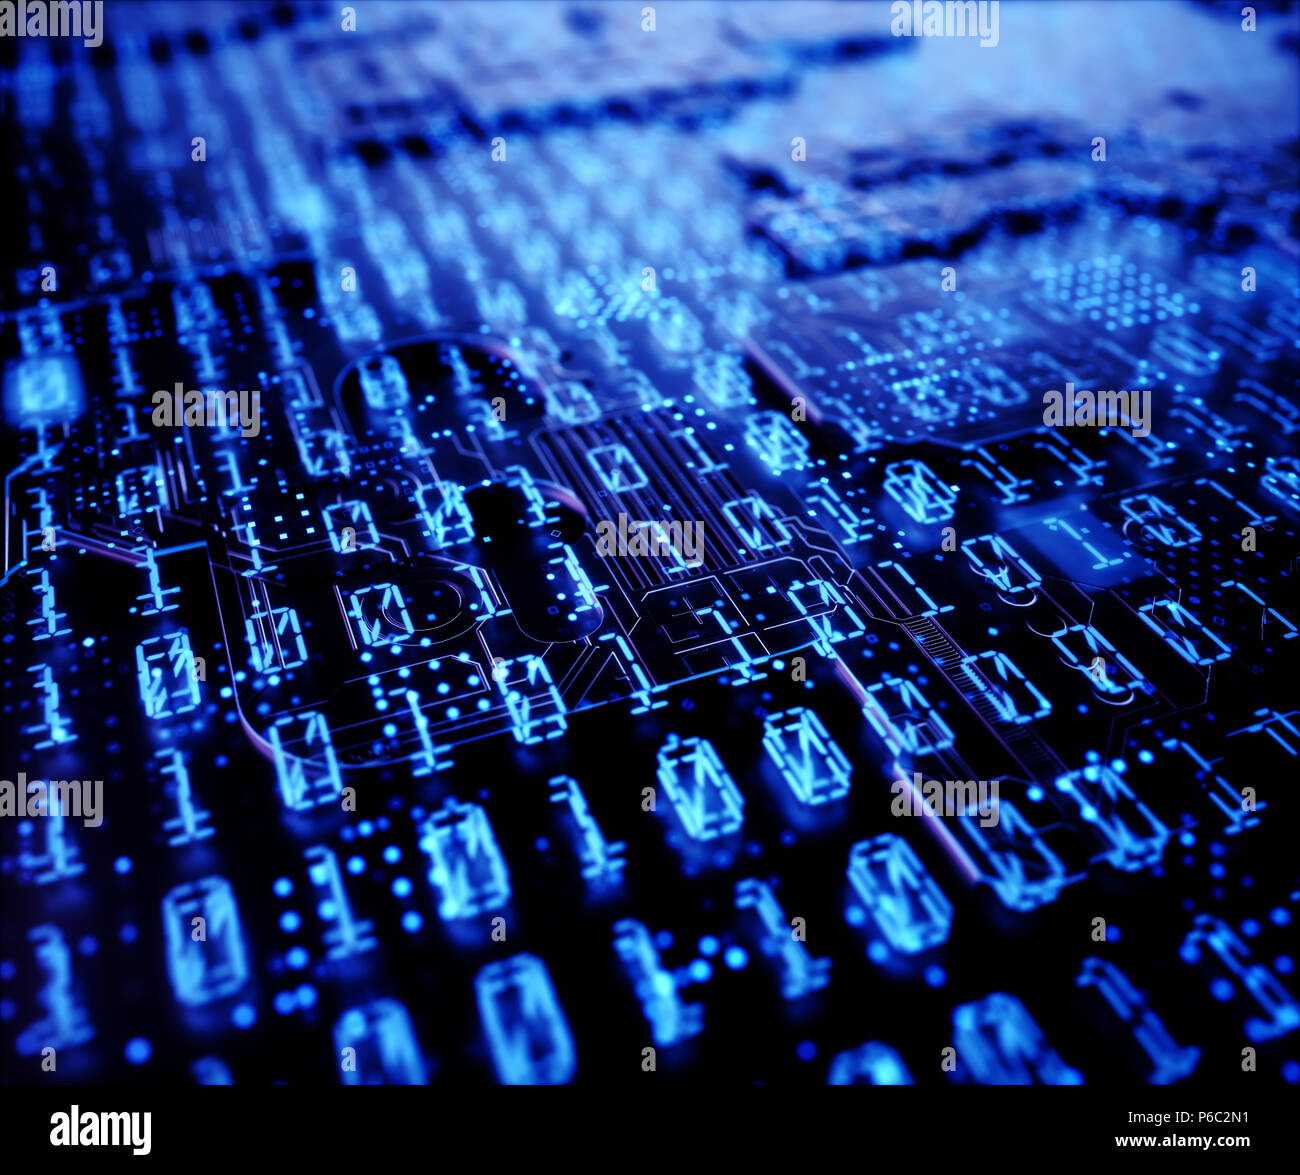 3D illustration. Abstract background of binary codes on a digital display, technology concept. - Stock Image